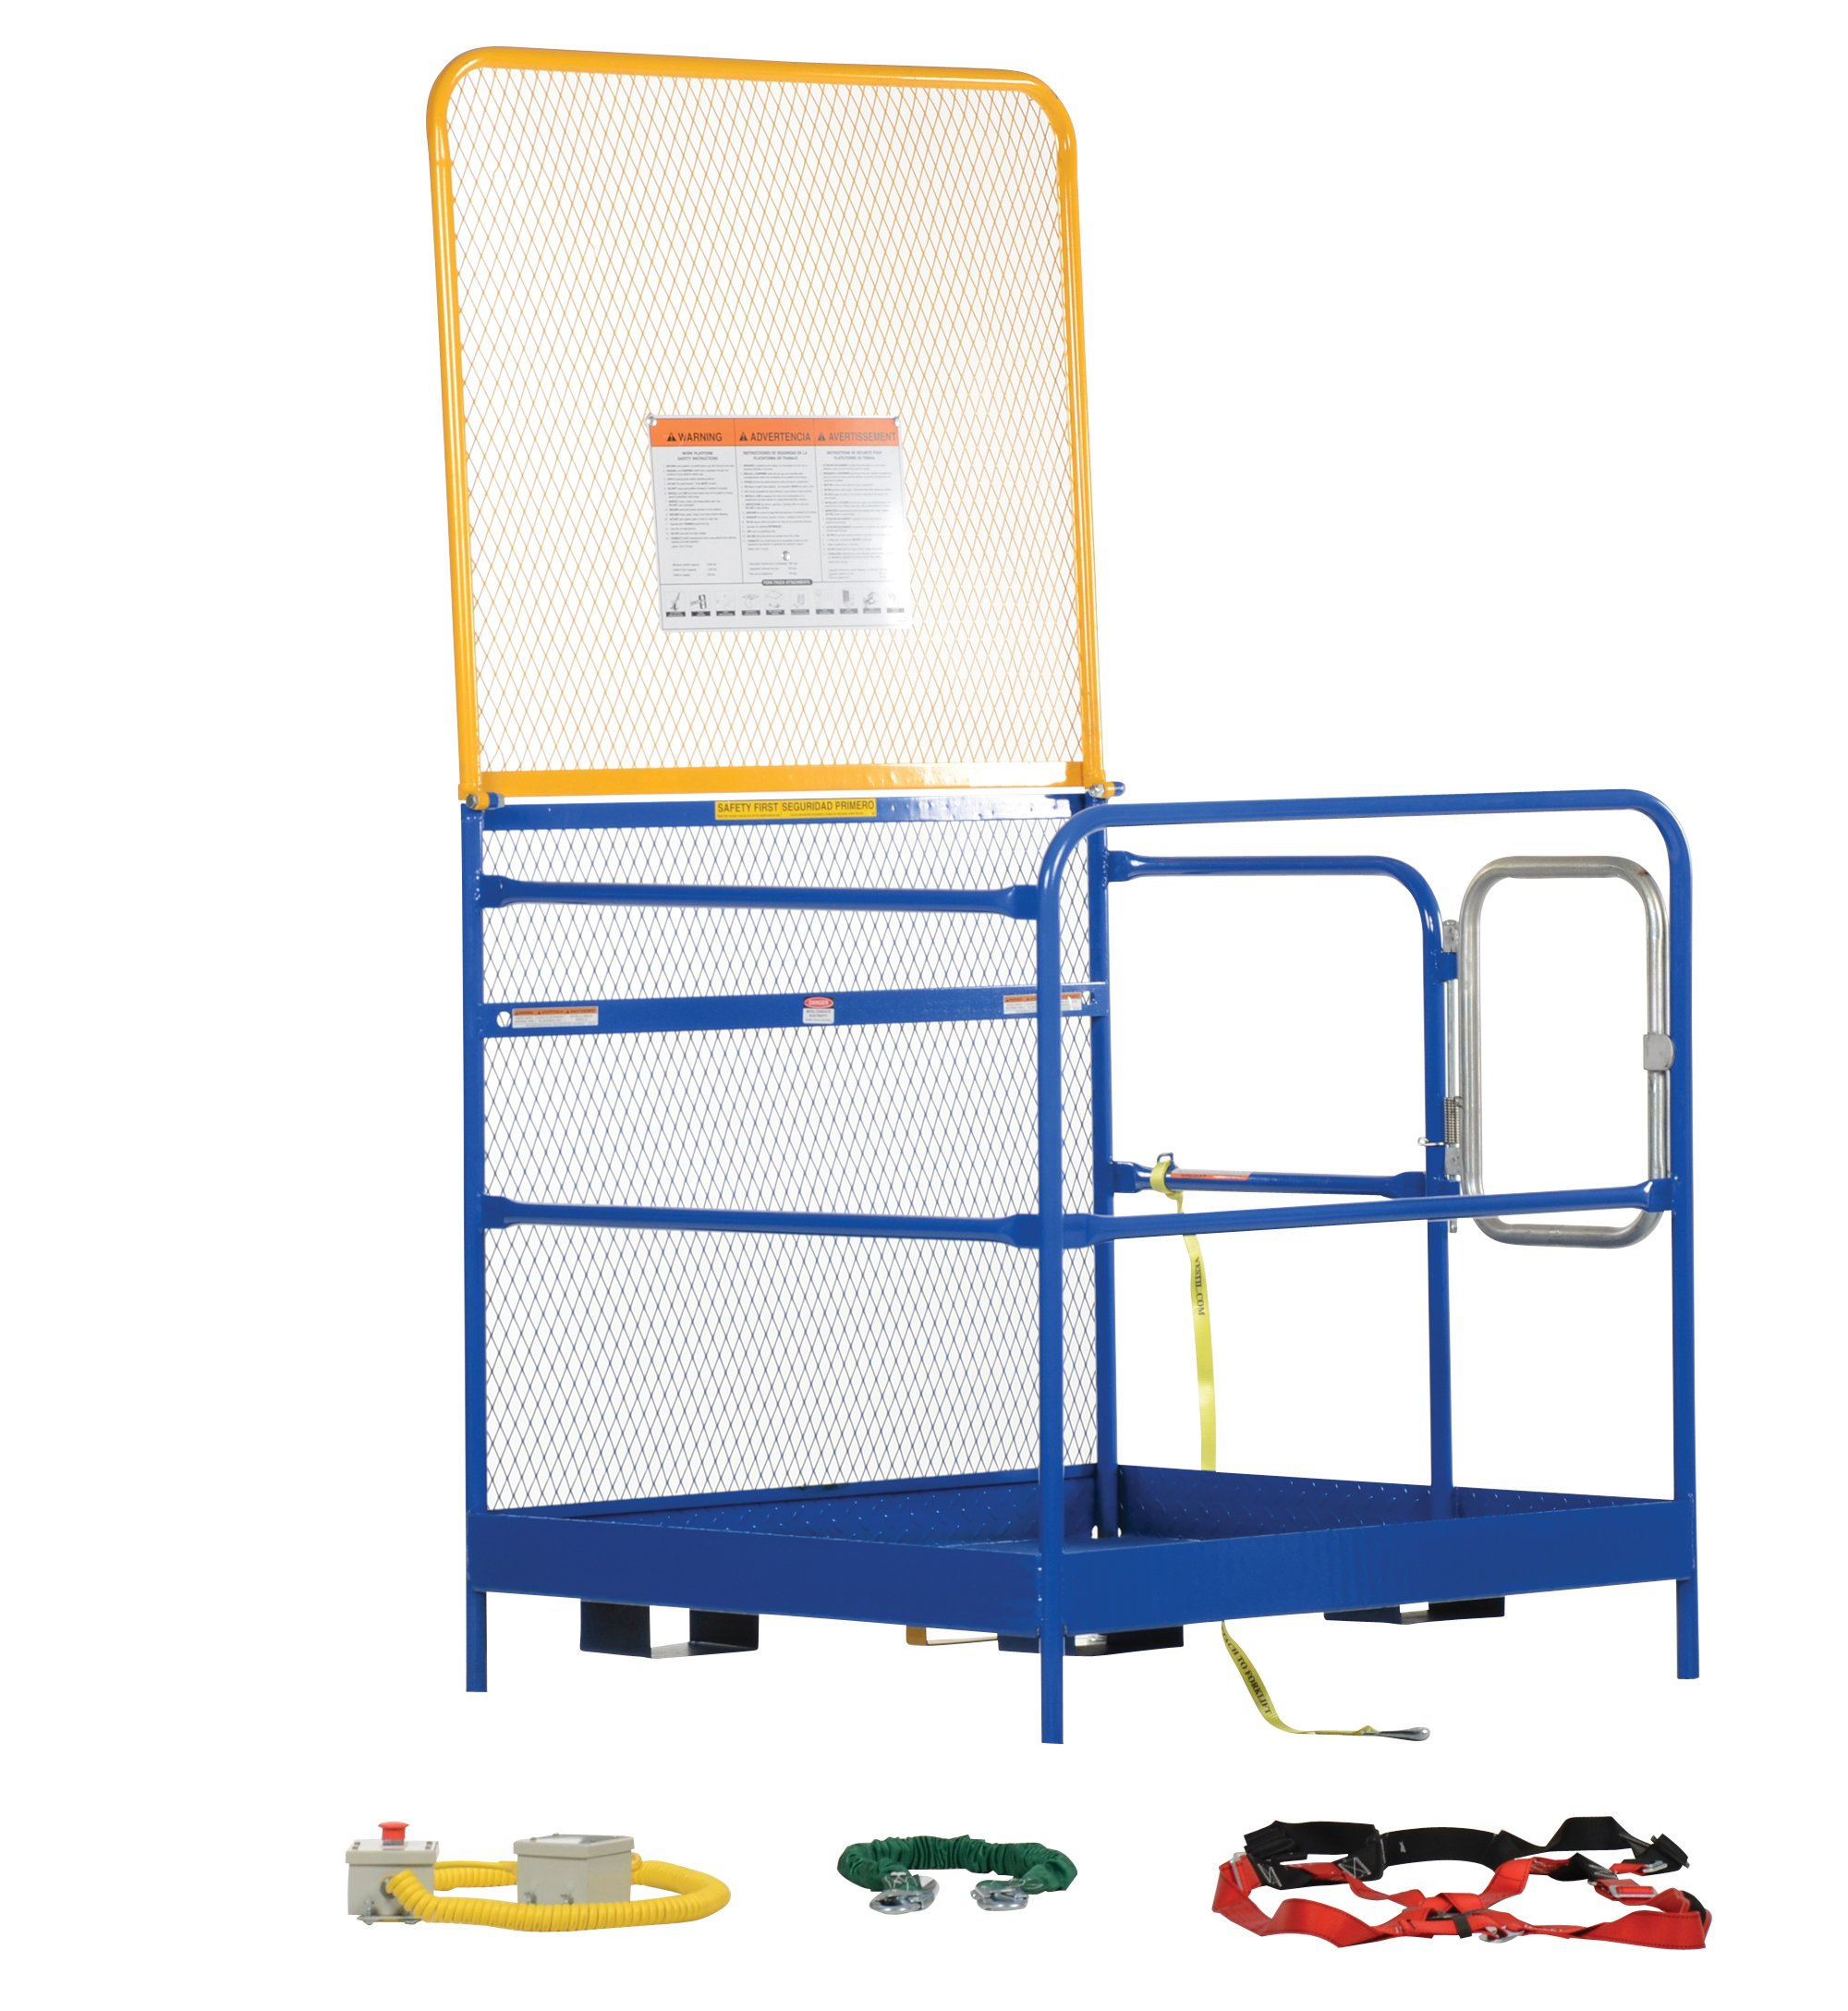 Vestil WP-4848-84B-FF Steel Work Platform, Emergency Stop Button Kit and Web Lanyard with Safety Harness, 48'' x 48'' with 84'' Back, Powder Coat Blue